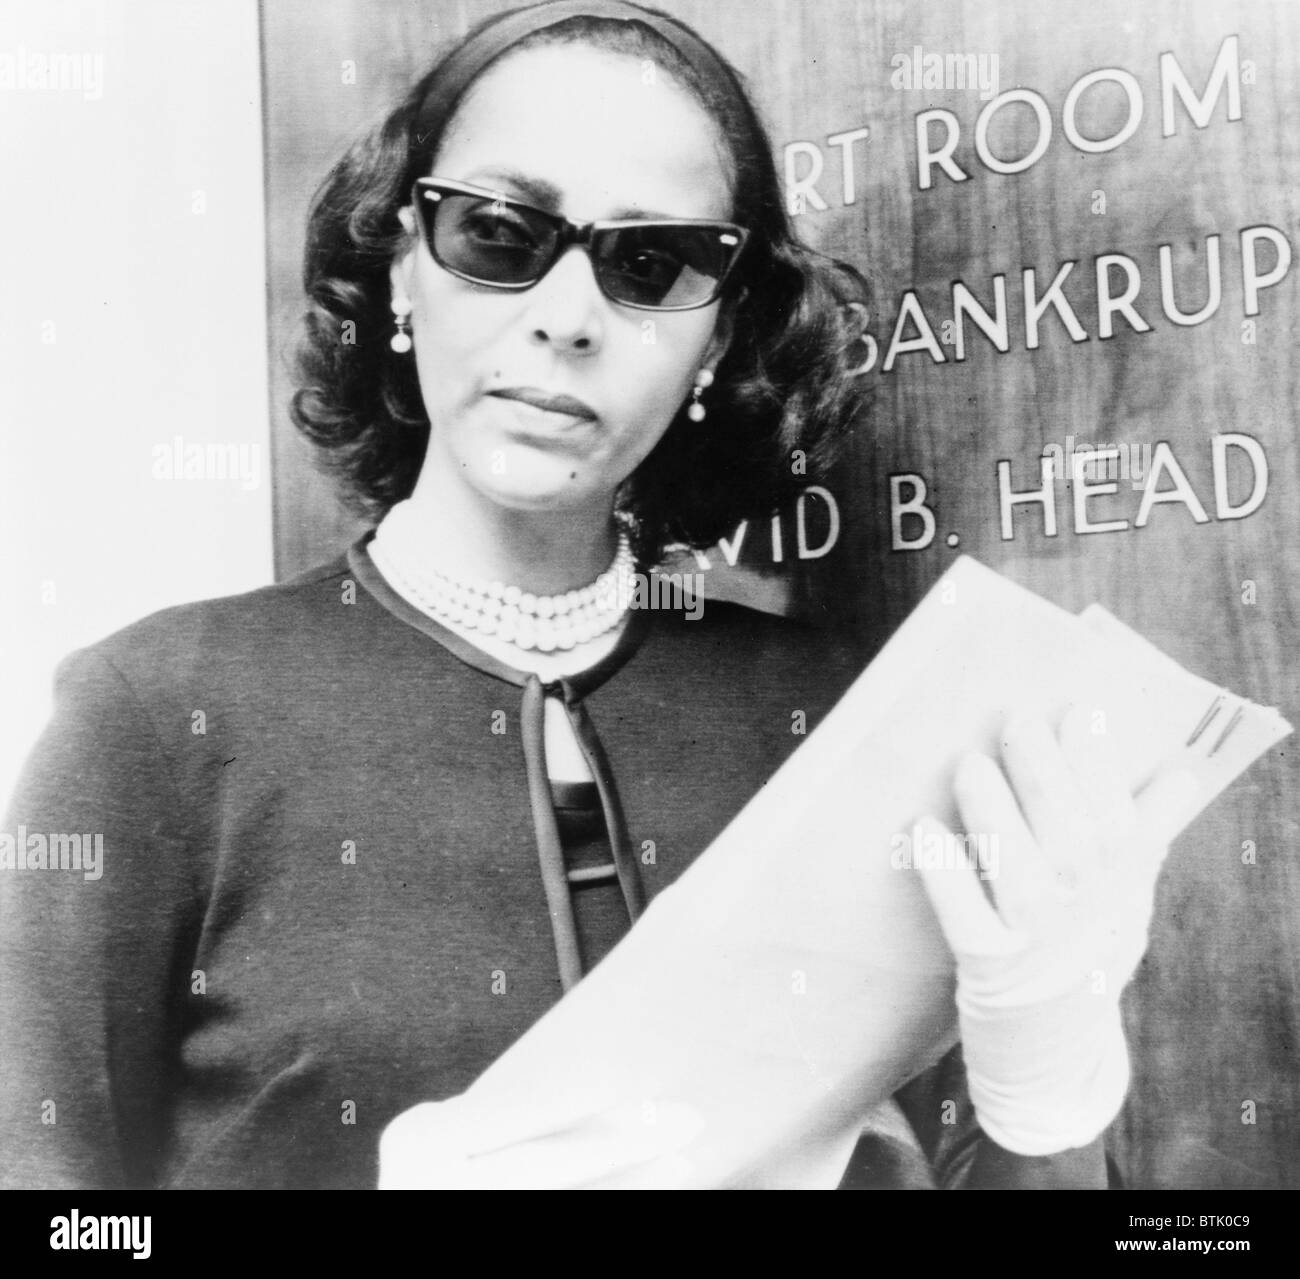 dorothy dandridge 1922 1965 prepares to enter bankruptcy court in